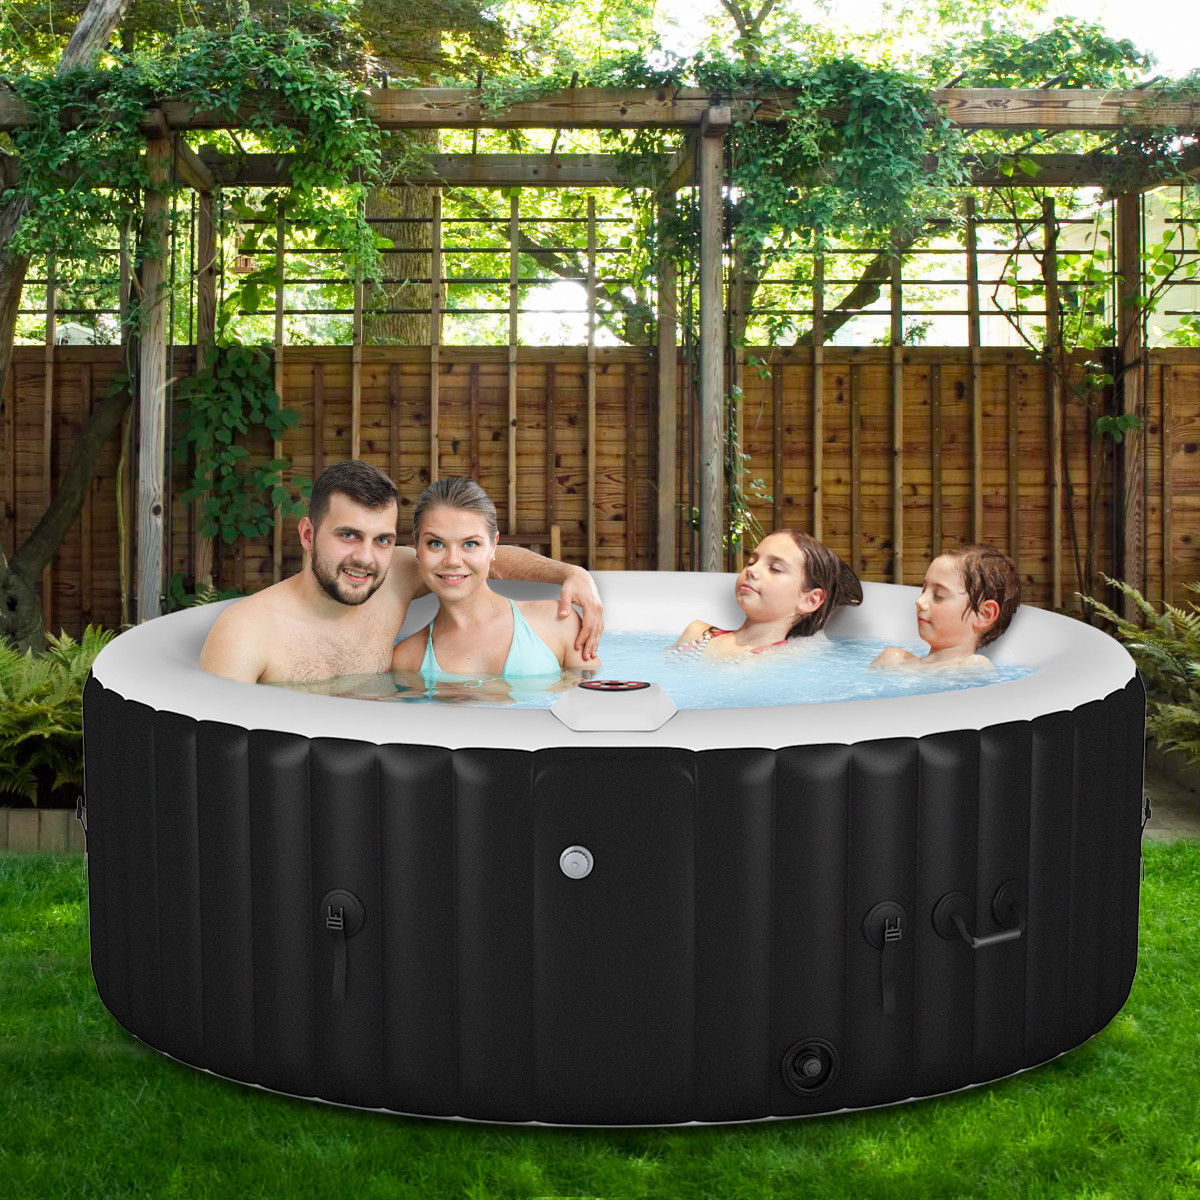 Goplus Portable Inflatable Bubble Massage Spa Hot Tub 4 Person Relaxing Outdoor Walmart Canada